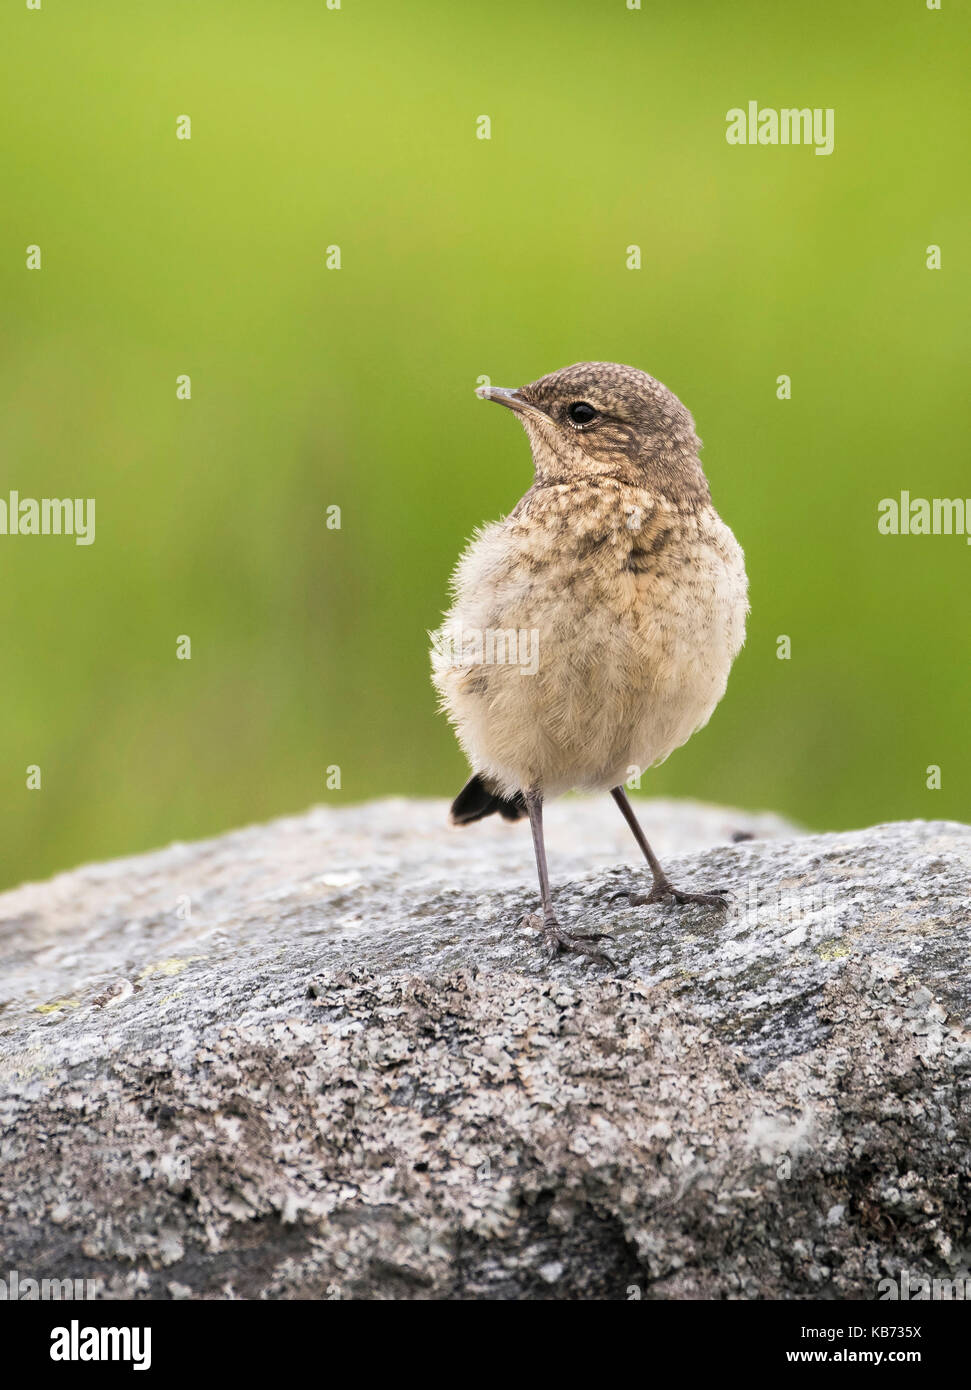 Young Northern Wheatear (oenanthe oenanthe) on rock with lichen, Norway, More og Romsdal, Runde island - Stock Image